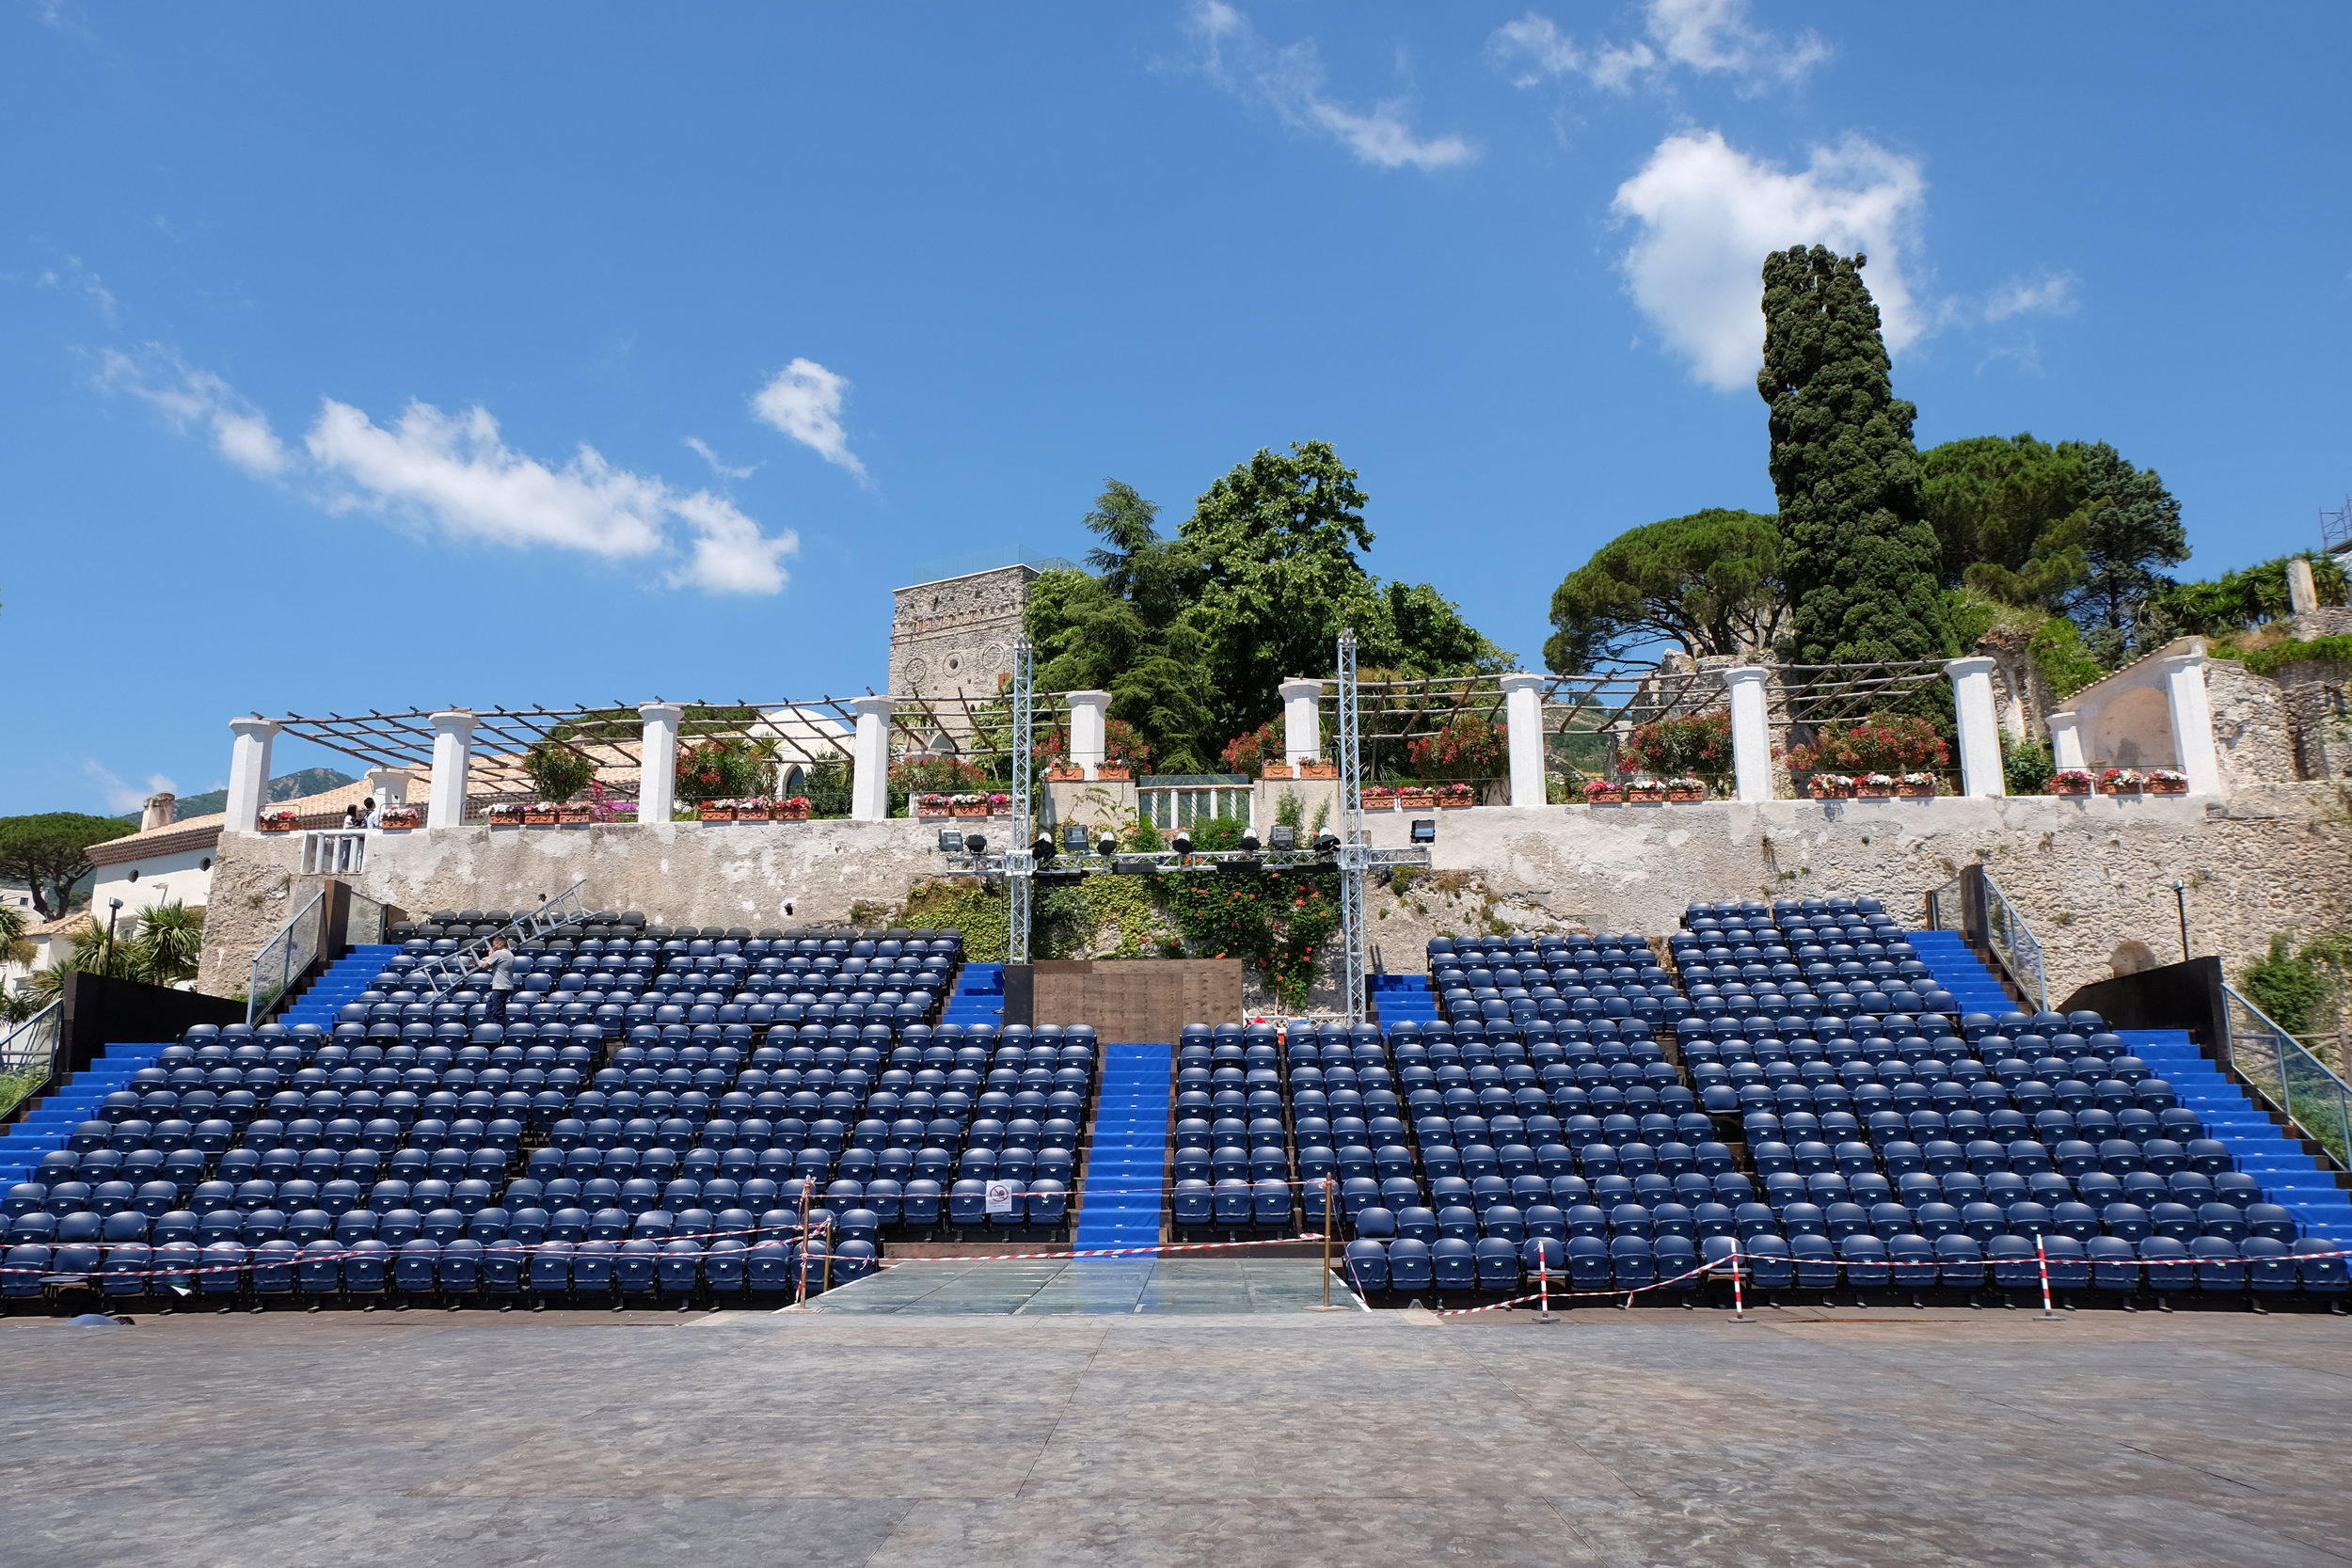 Open air stage seating area.